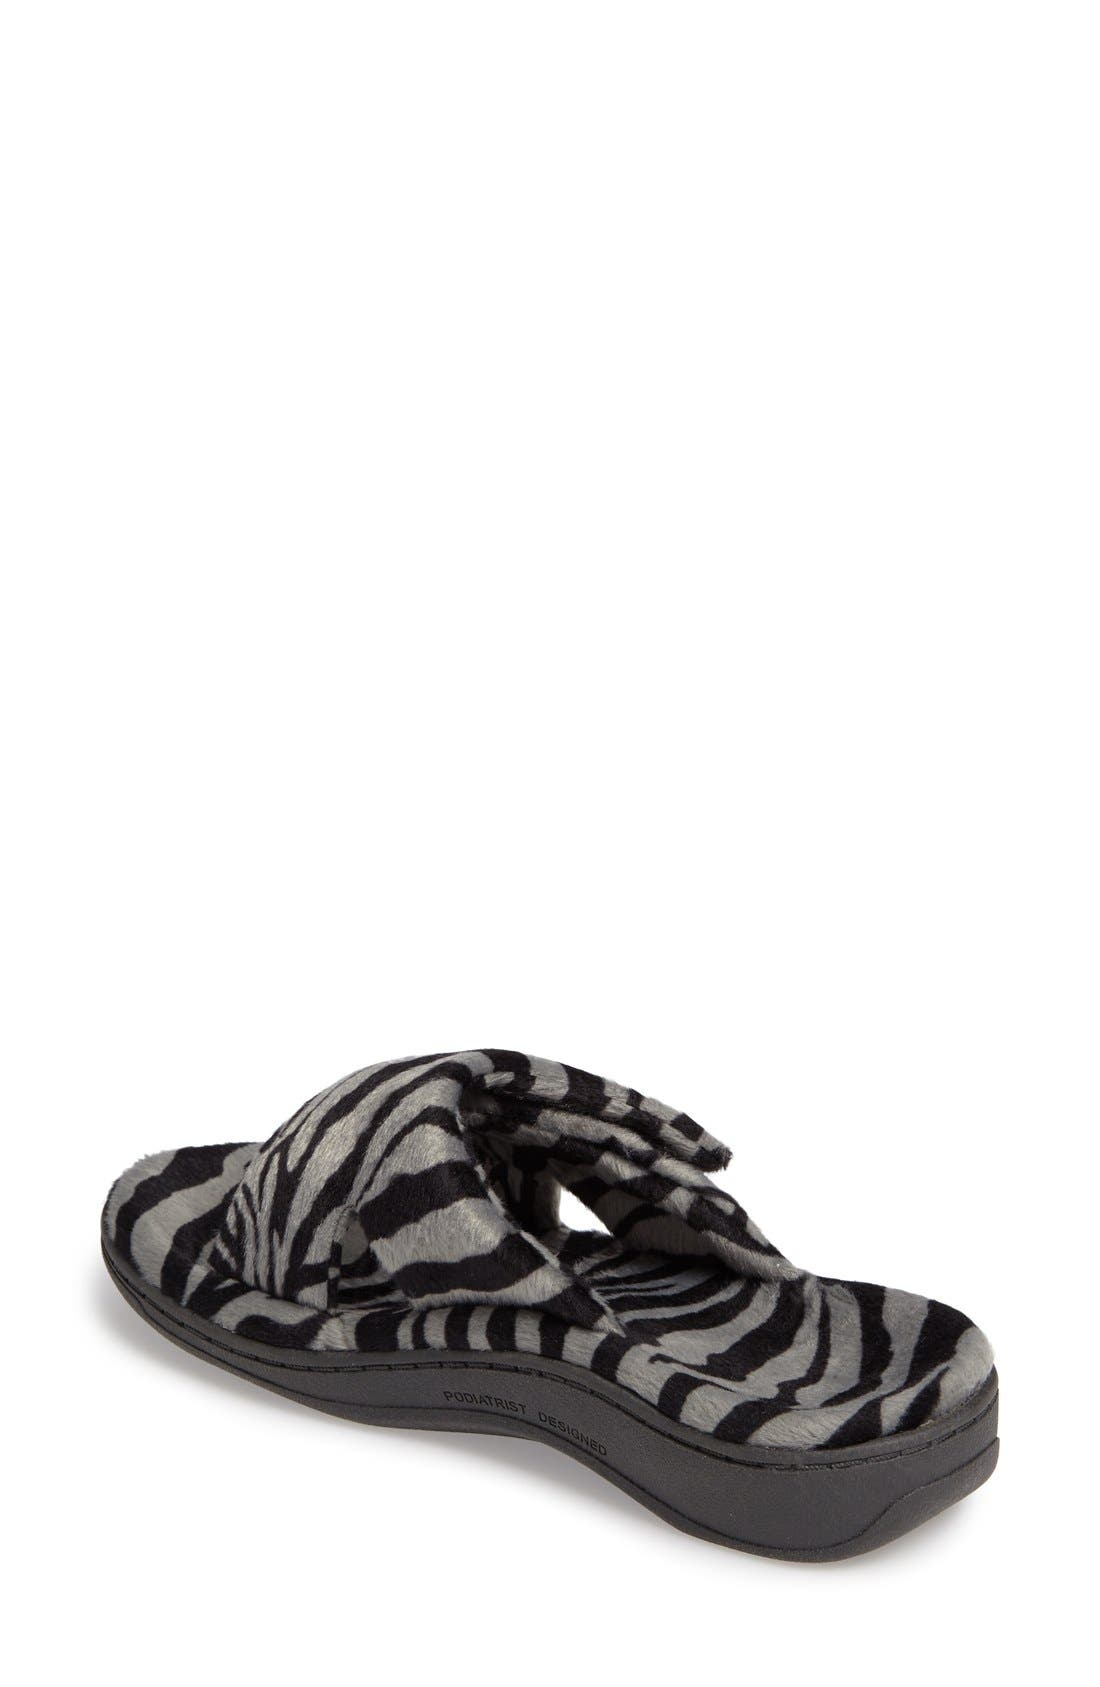 VIONIC, Indulge Relax Slipper, Alternate thumbnail 5, color, GREY ZEBRA FABRIC